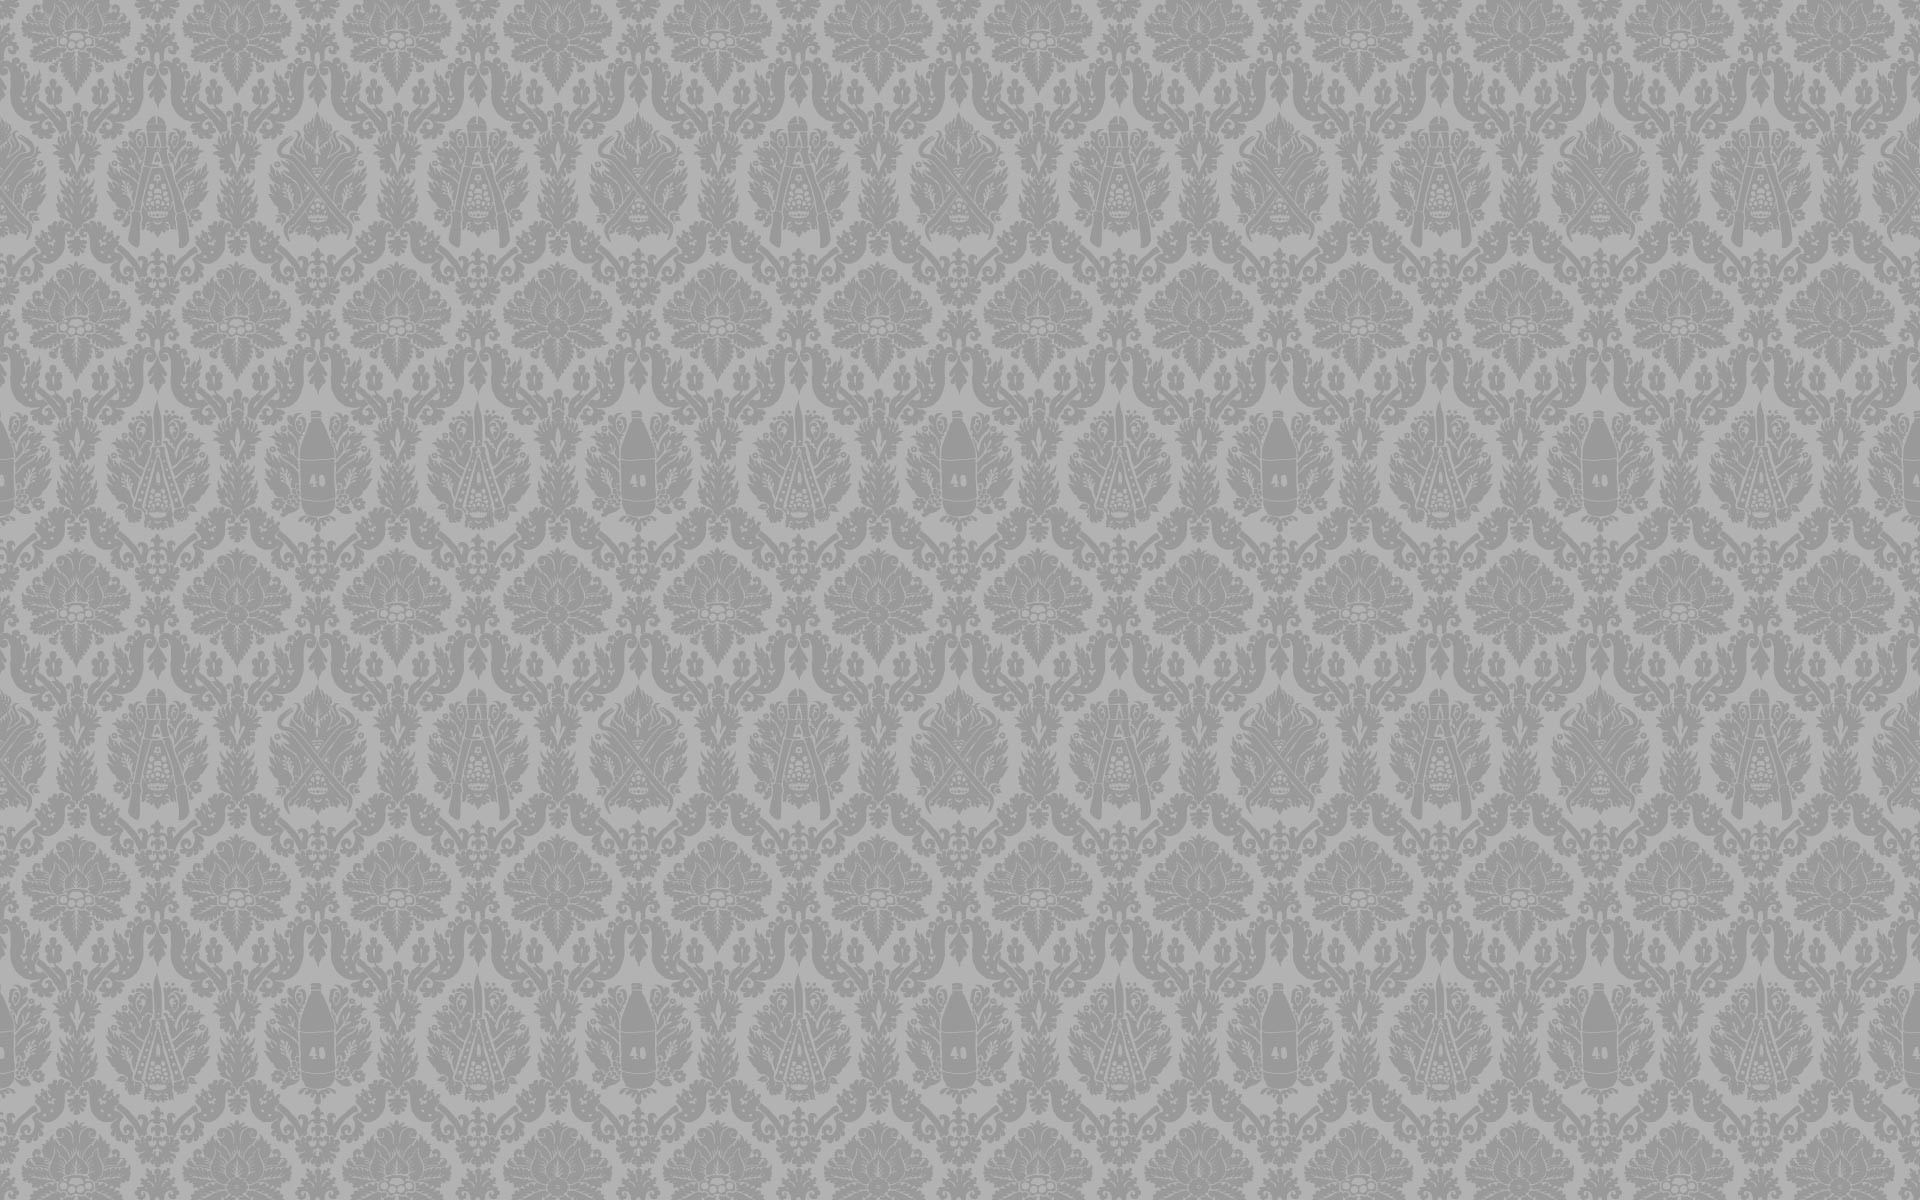 Elegant embossed floral background – snowy white. Love this one! |  Backgrounds and Wallpaper | Pinterest | Backgrounds free